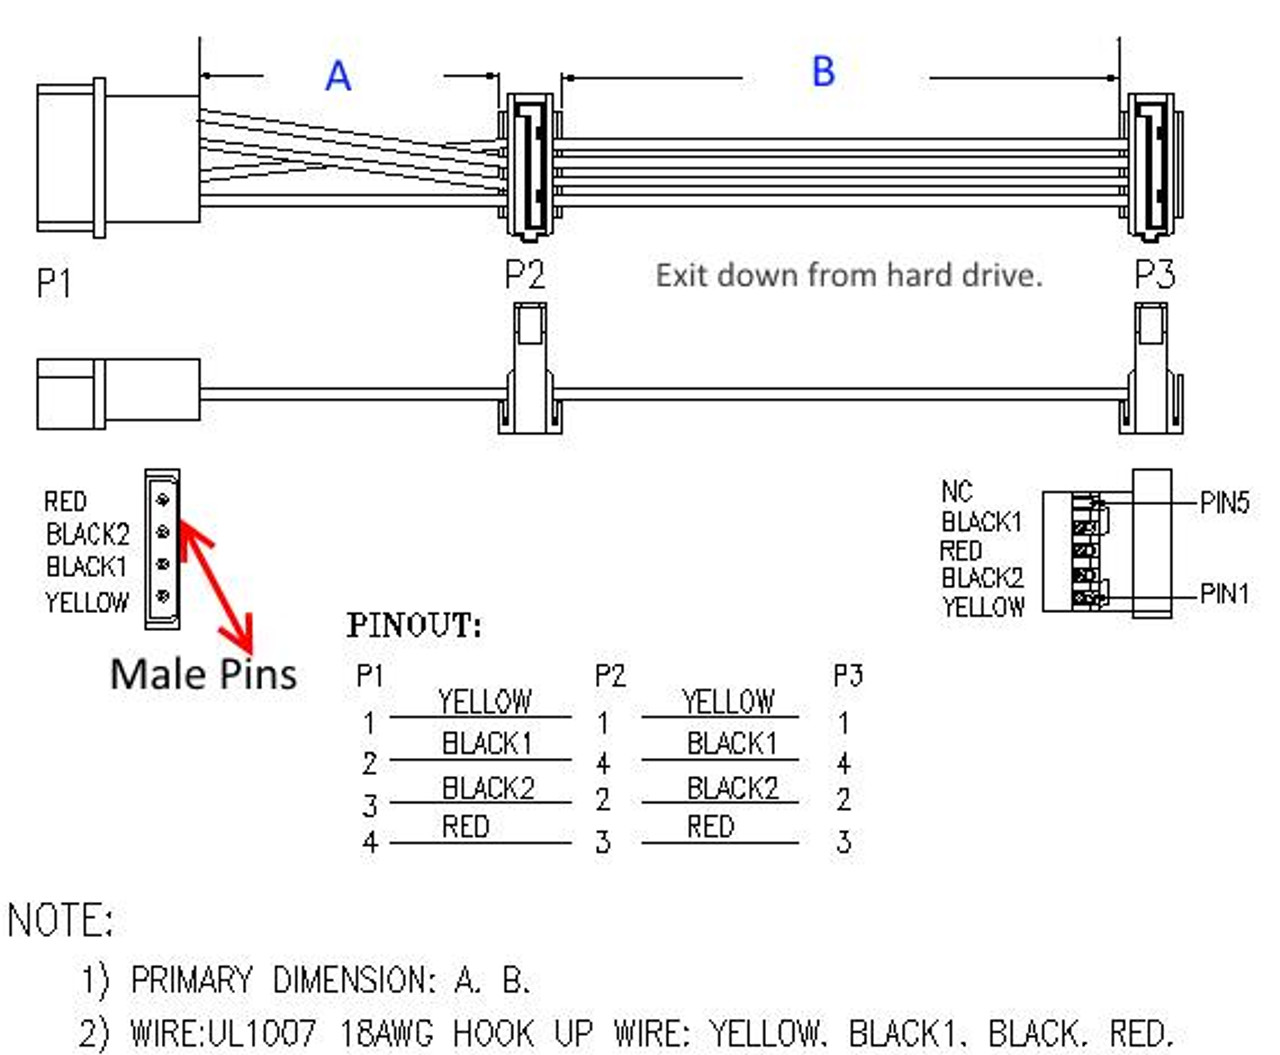 wiring diagram sata wiring diagram usb to sata data transfer diagram sata connector wiring diagram #8